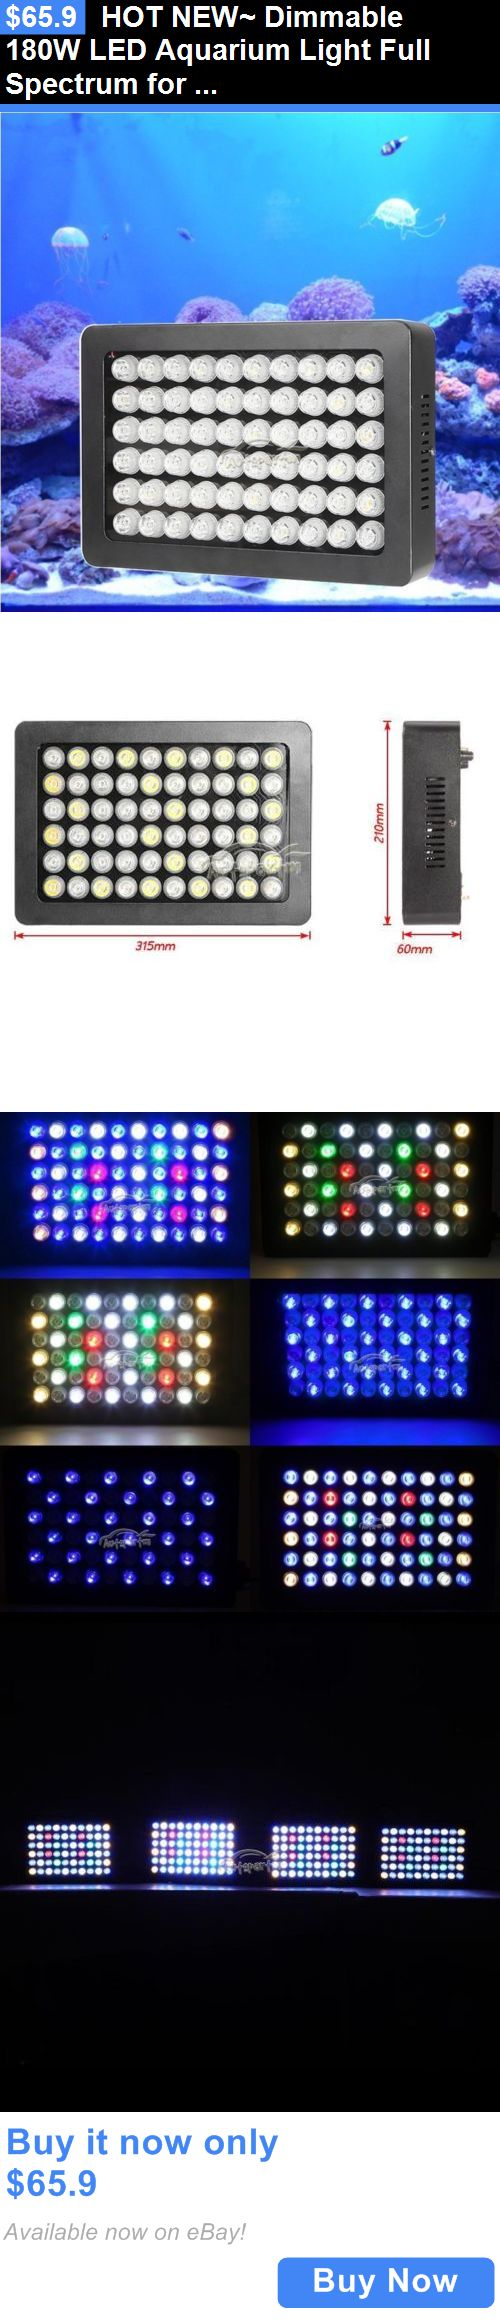 Animals Fish And Aquariums: Hot New~ Dimmable 180W Led Aquarium Light Full Spectrum For Coral Reef Fish Tank BUY IT NOW ONLY: $65.9